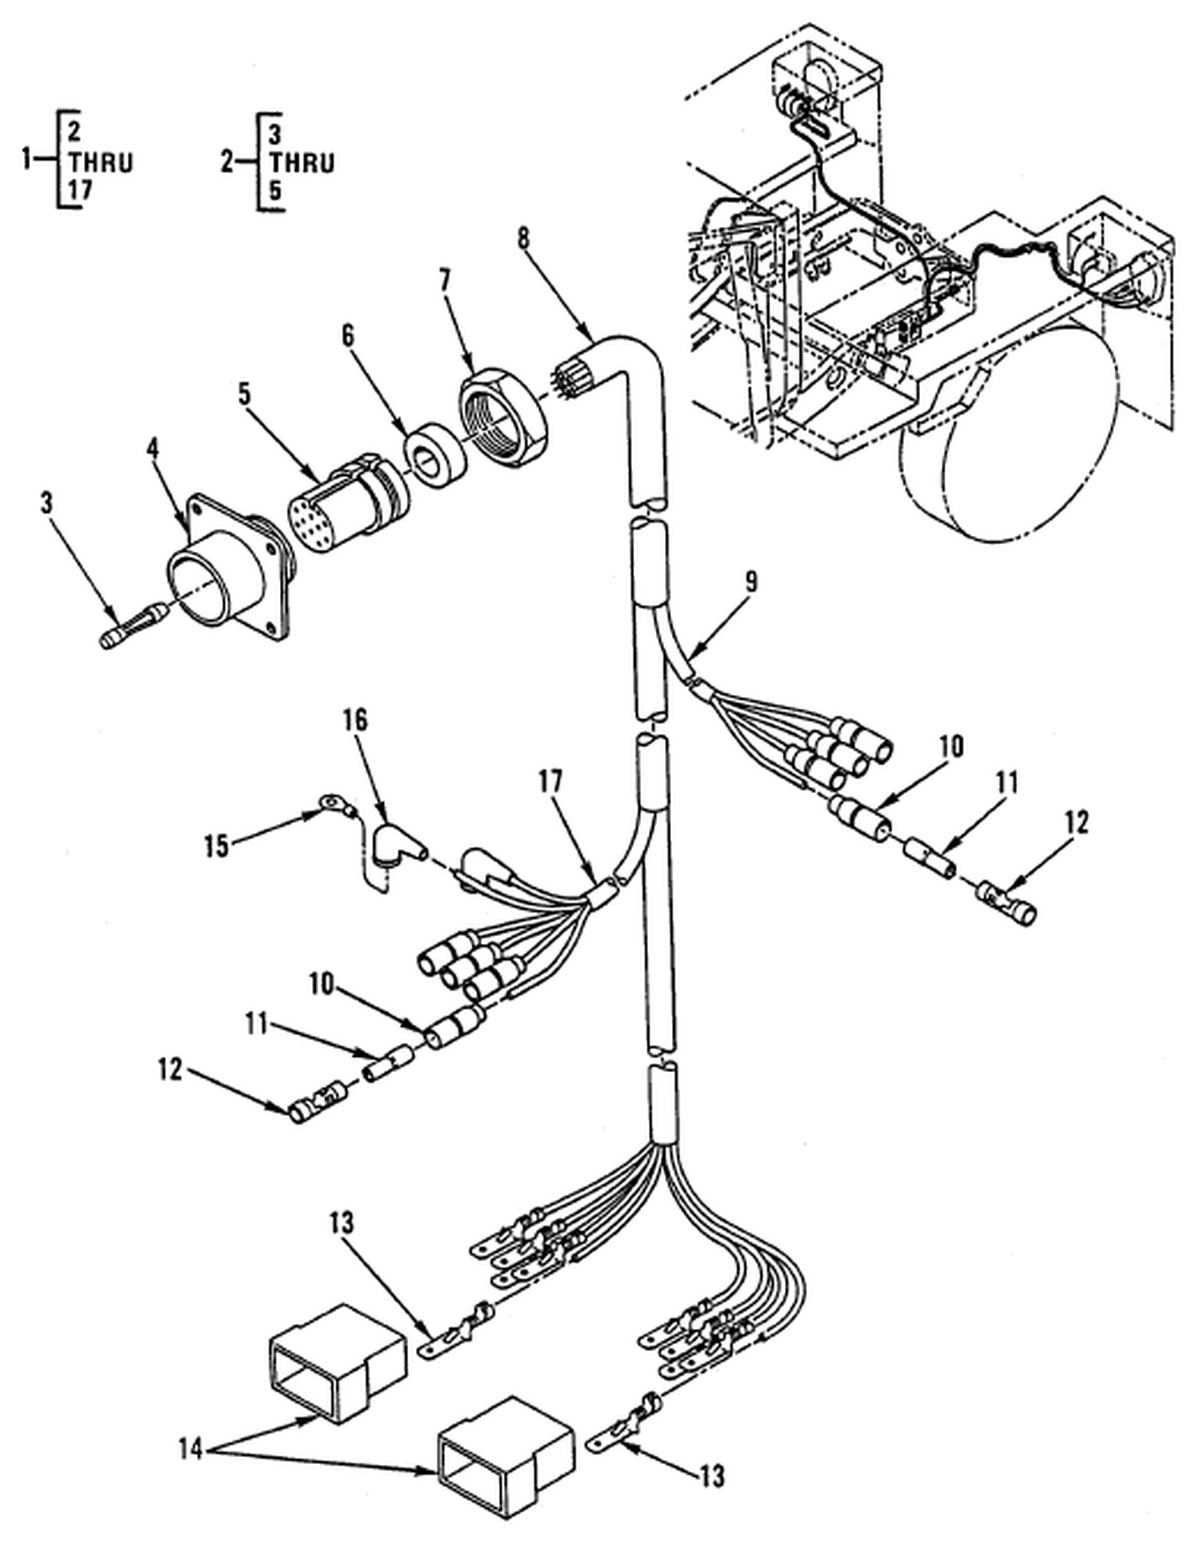 hight resolution of hull or chassis wiring harness trailer wiring harness and receptacle connector